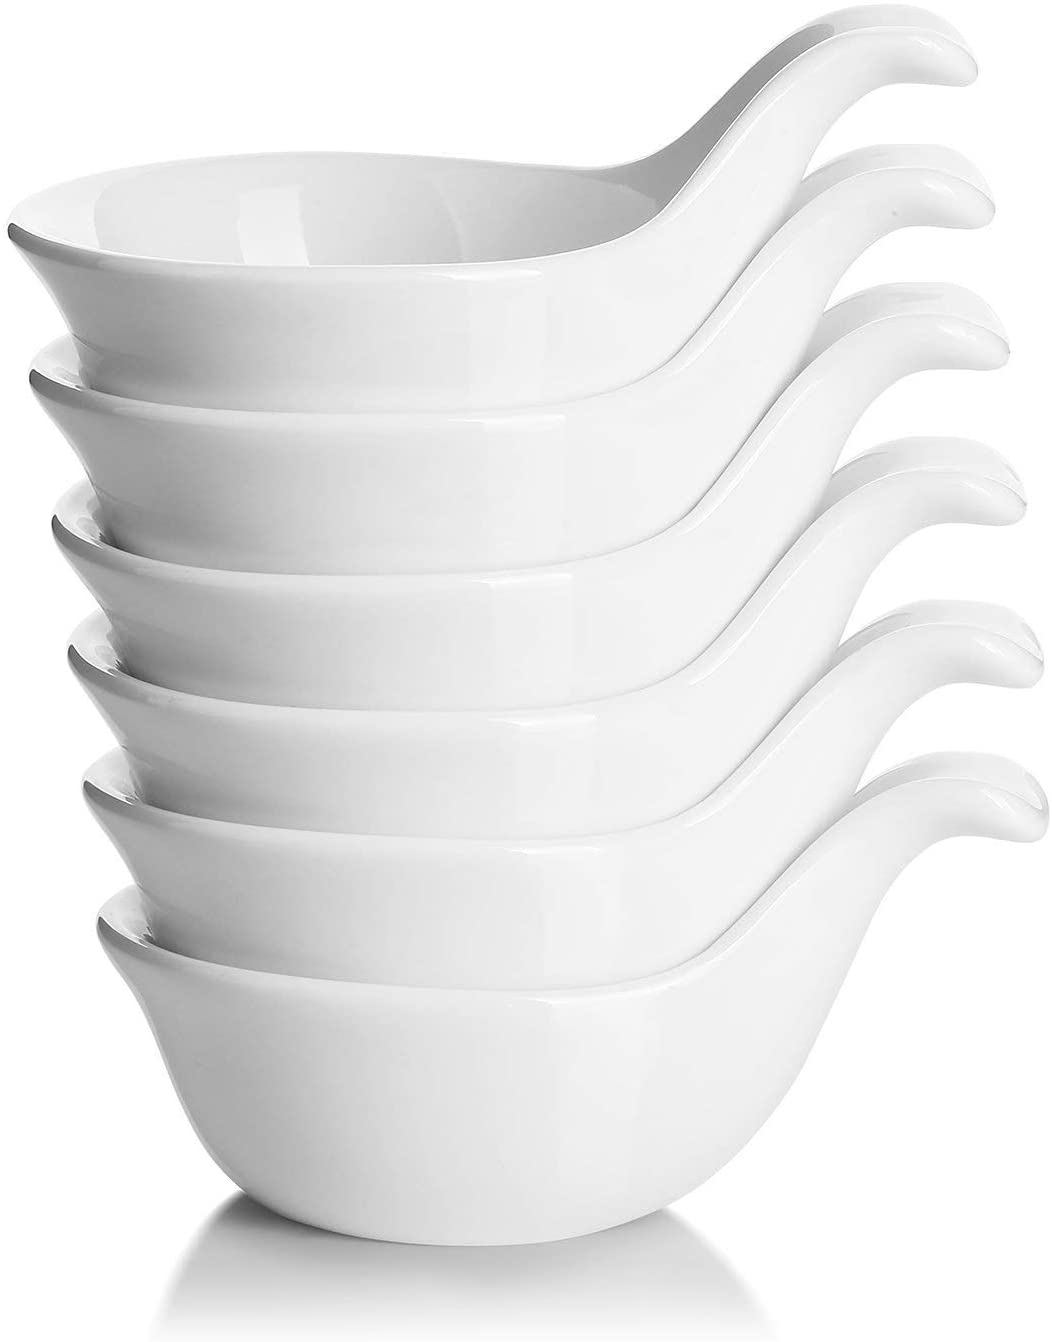 DOWAN Side Dish Porcelain Dip Bowl Set with Handle, 3 Oz Deep for Soy Sauce, Ketchup, Condiment, Appetizer, BBQ and other Party Dinner, 3 ounce, White